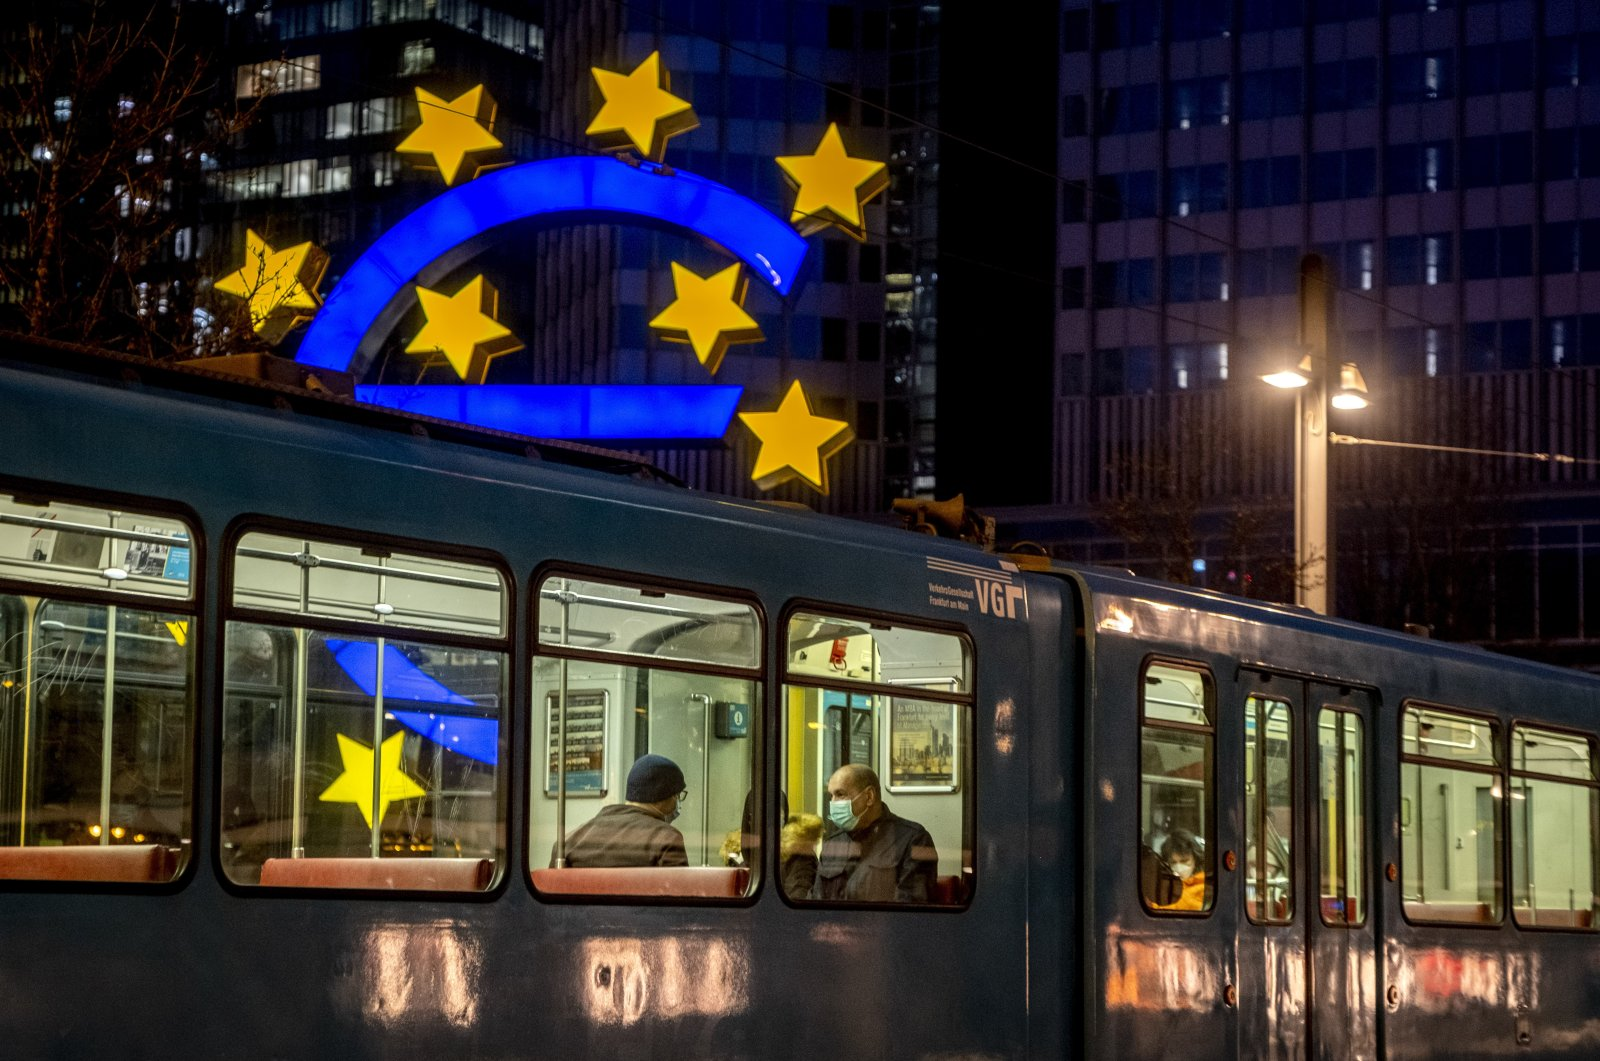 People in a tram pass the Euro sculpture in Frankfurt, Germany, March 11, 2021. (AP Photo)